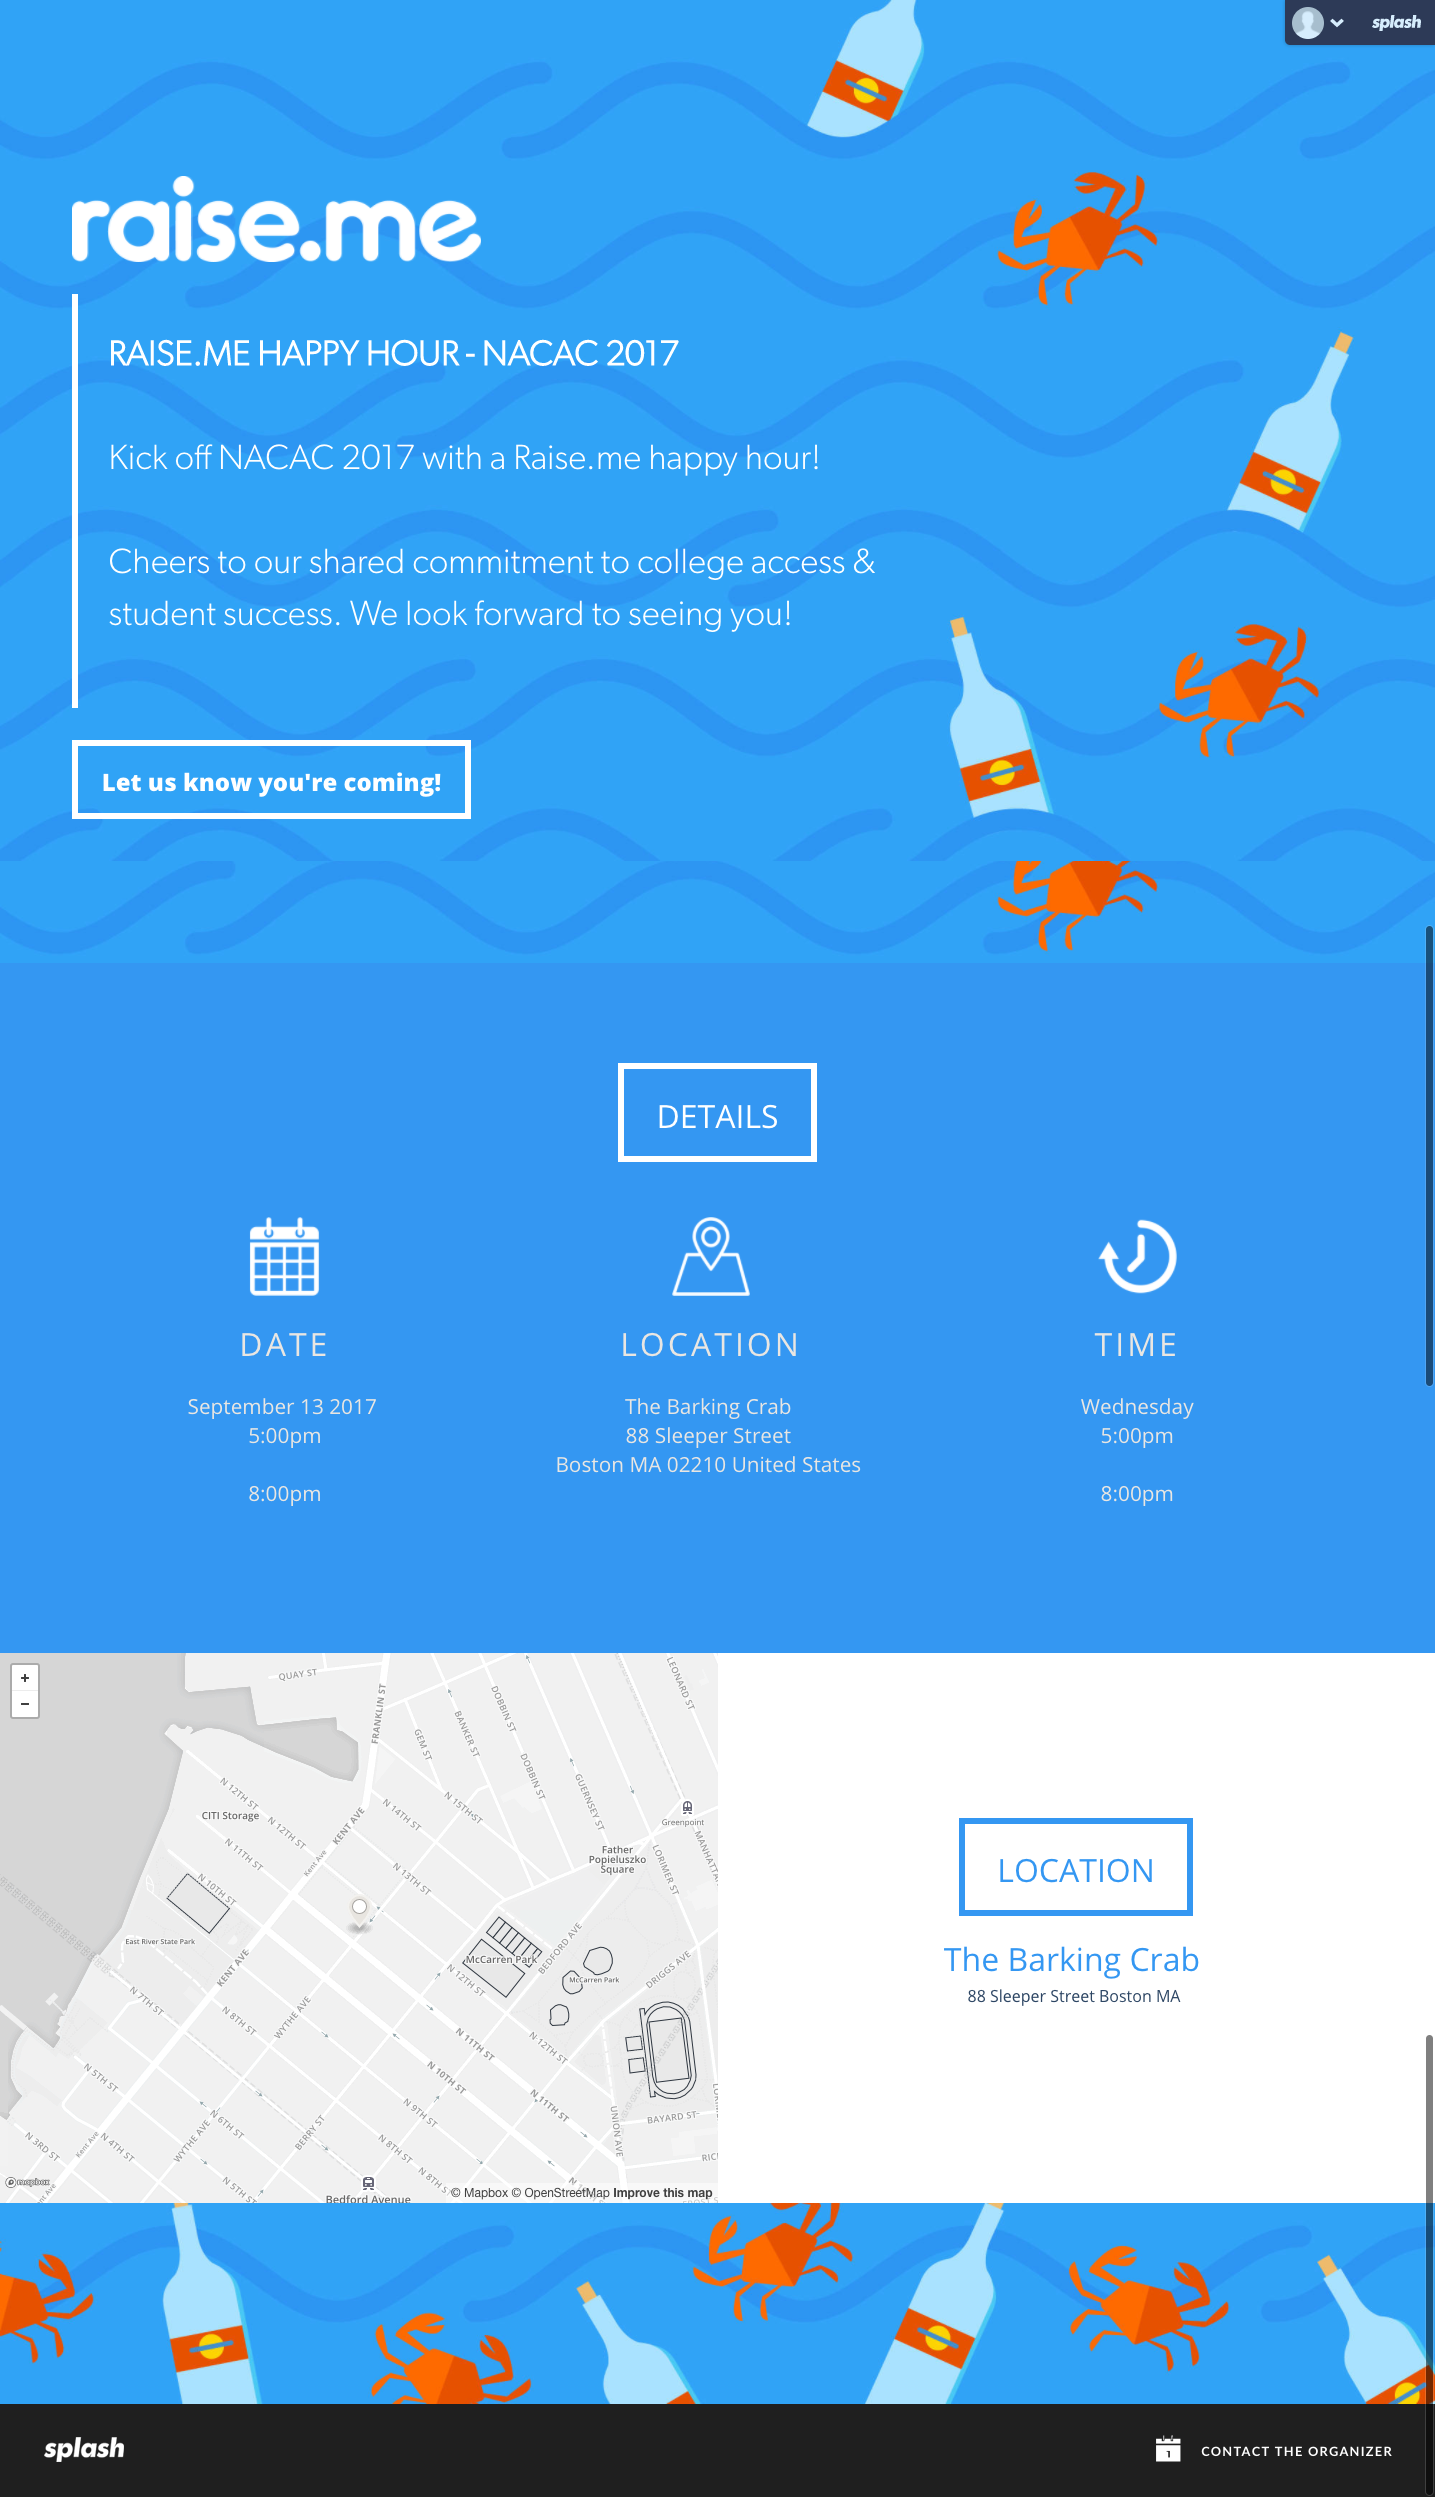 raiseme_partnerHH-Splash-mockup-v1.0.png